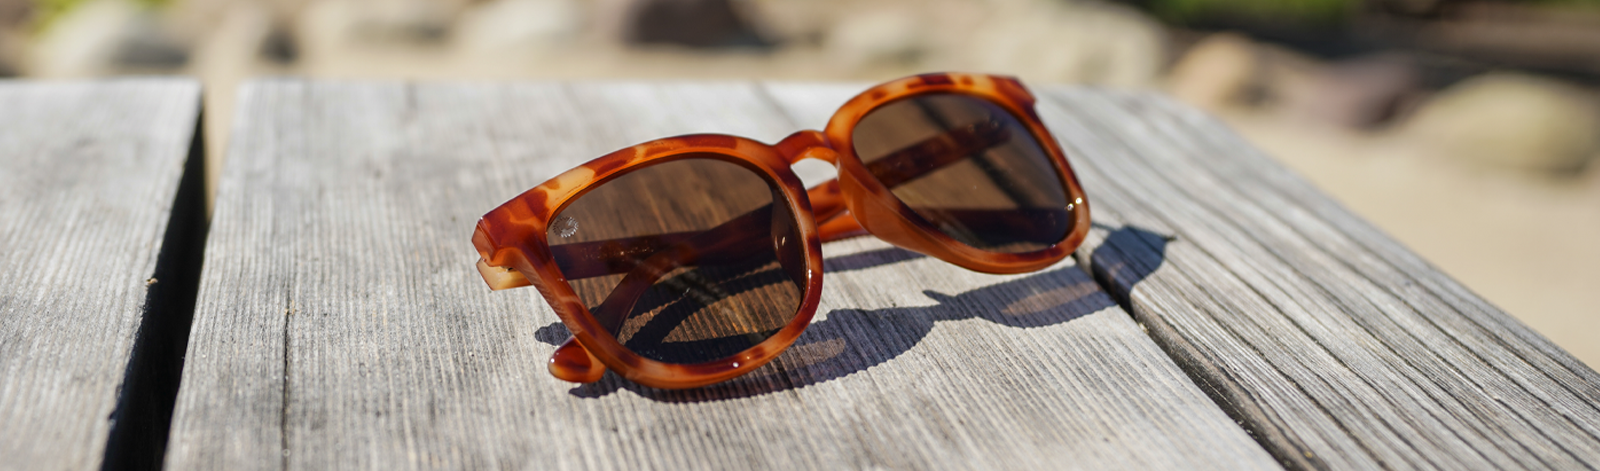 f46daf39f2d How to Tell If Your Shades Are Polarized - Knockaround.com